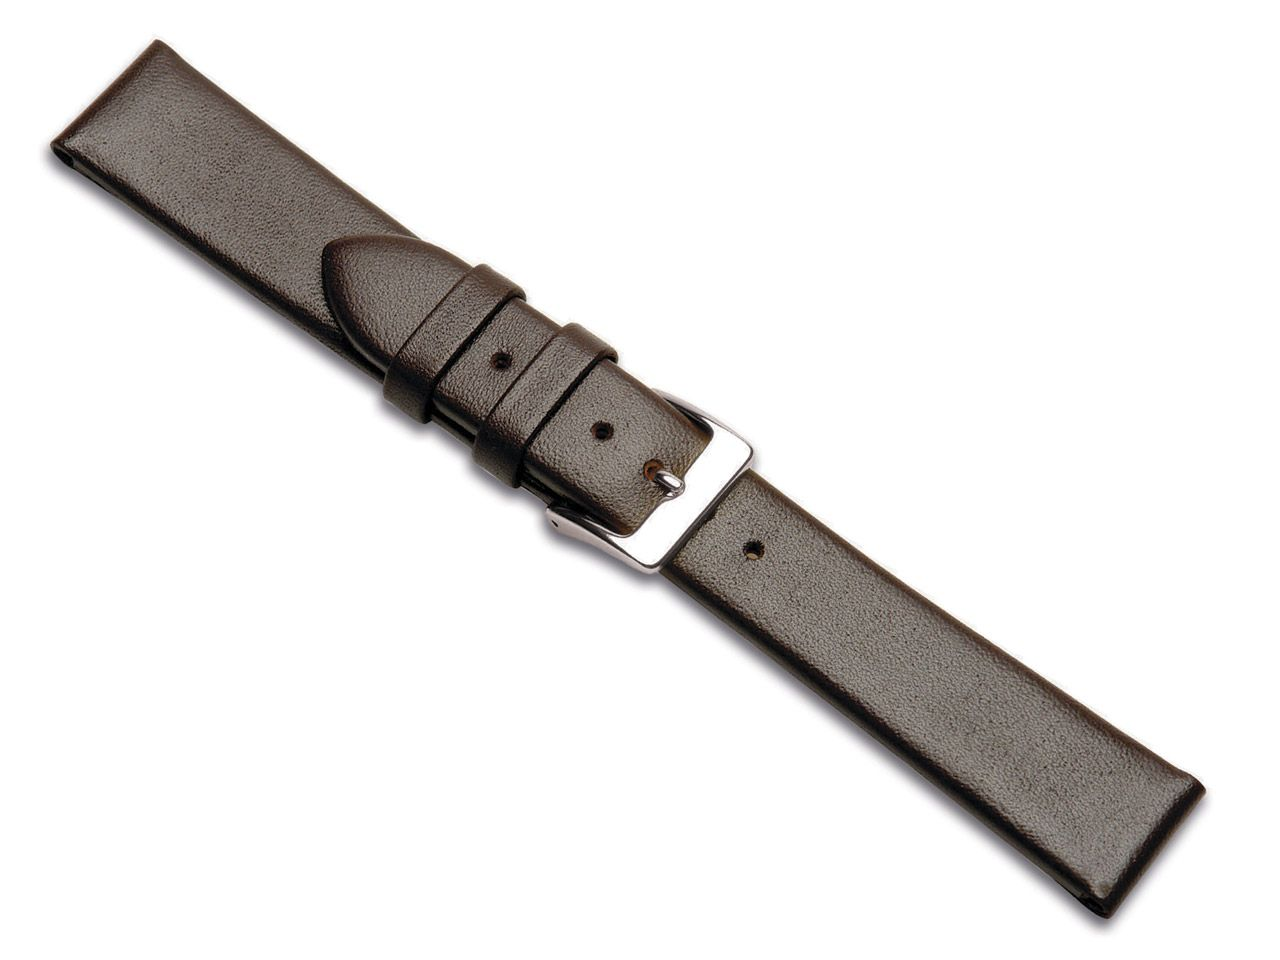 Bracelet montre en cuir de veau marron, 20 mm